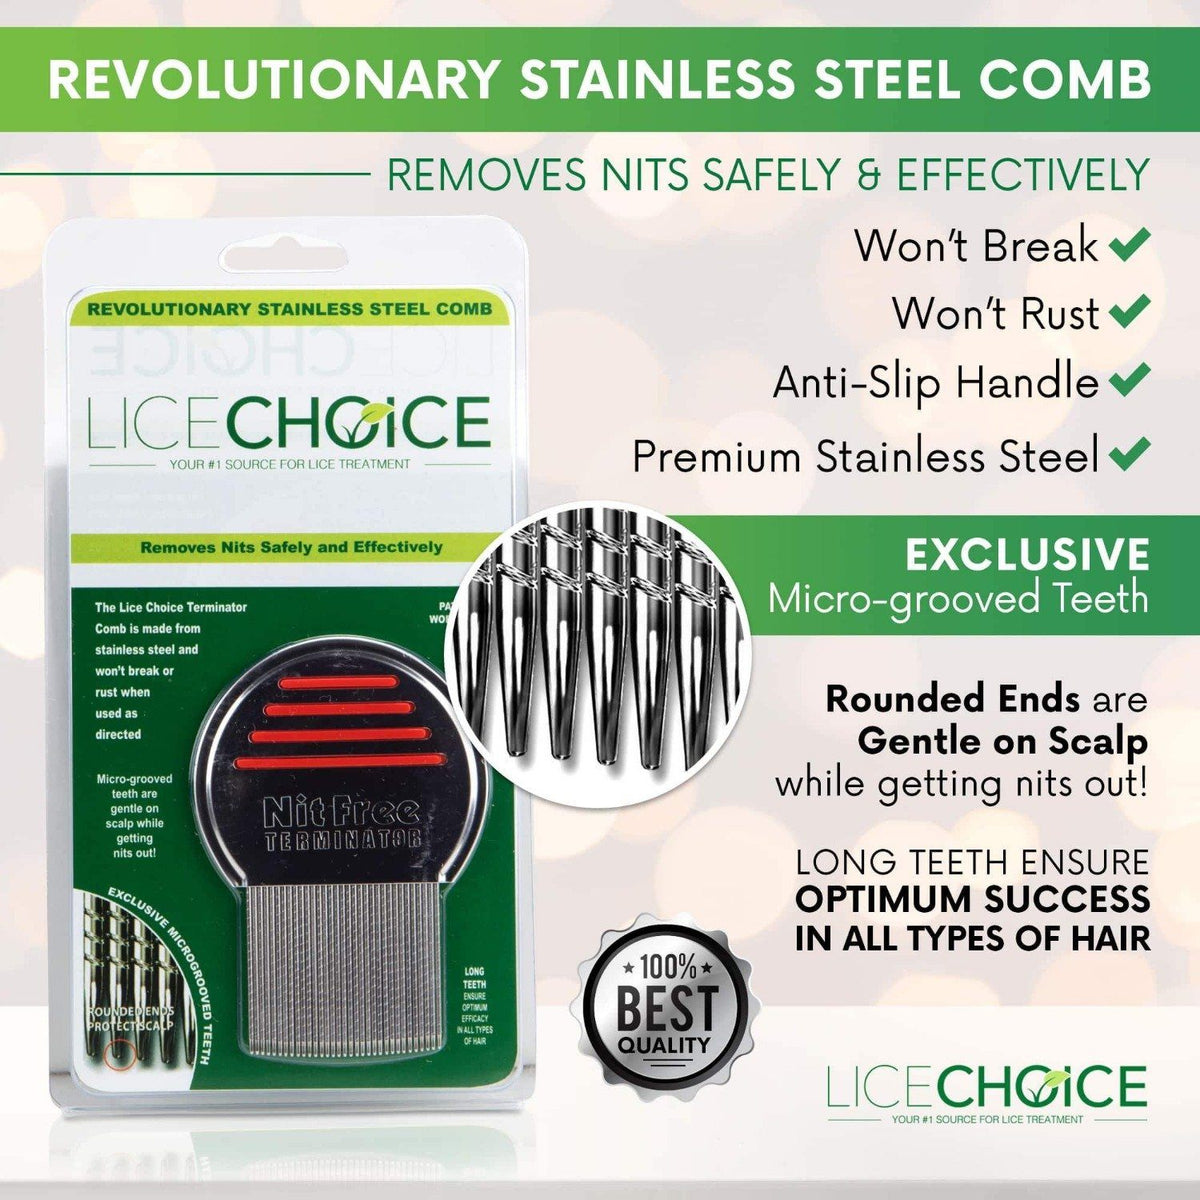 Lice Choice Terminator Nit Comb which won't rust, won't break, and is made of stainless steel. It removes nits safely and effectively.